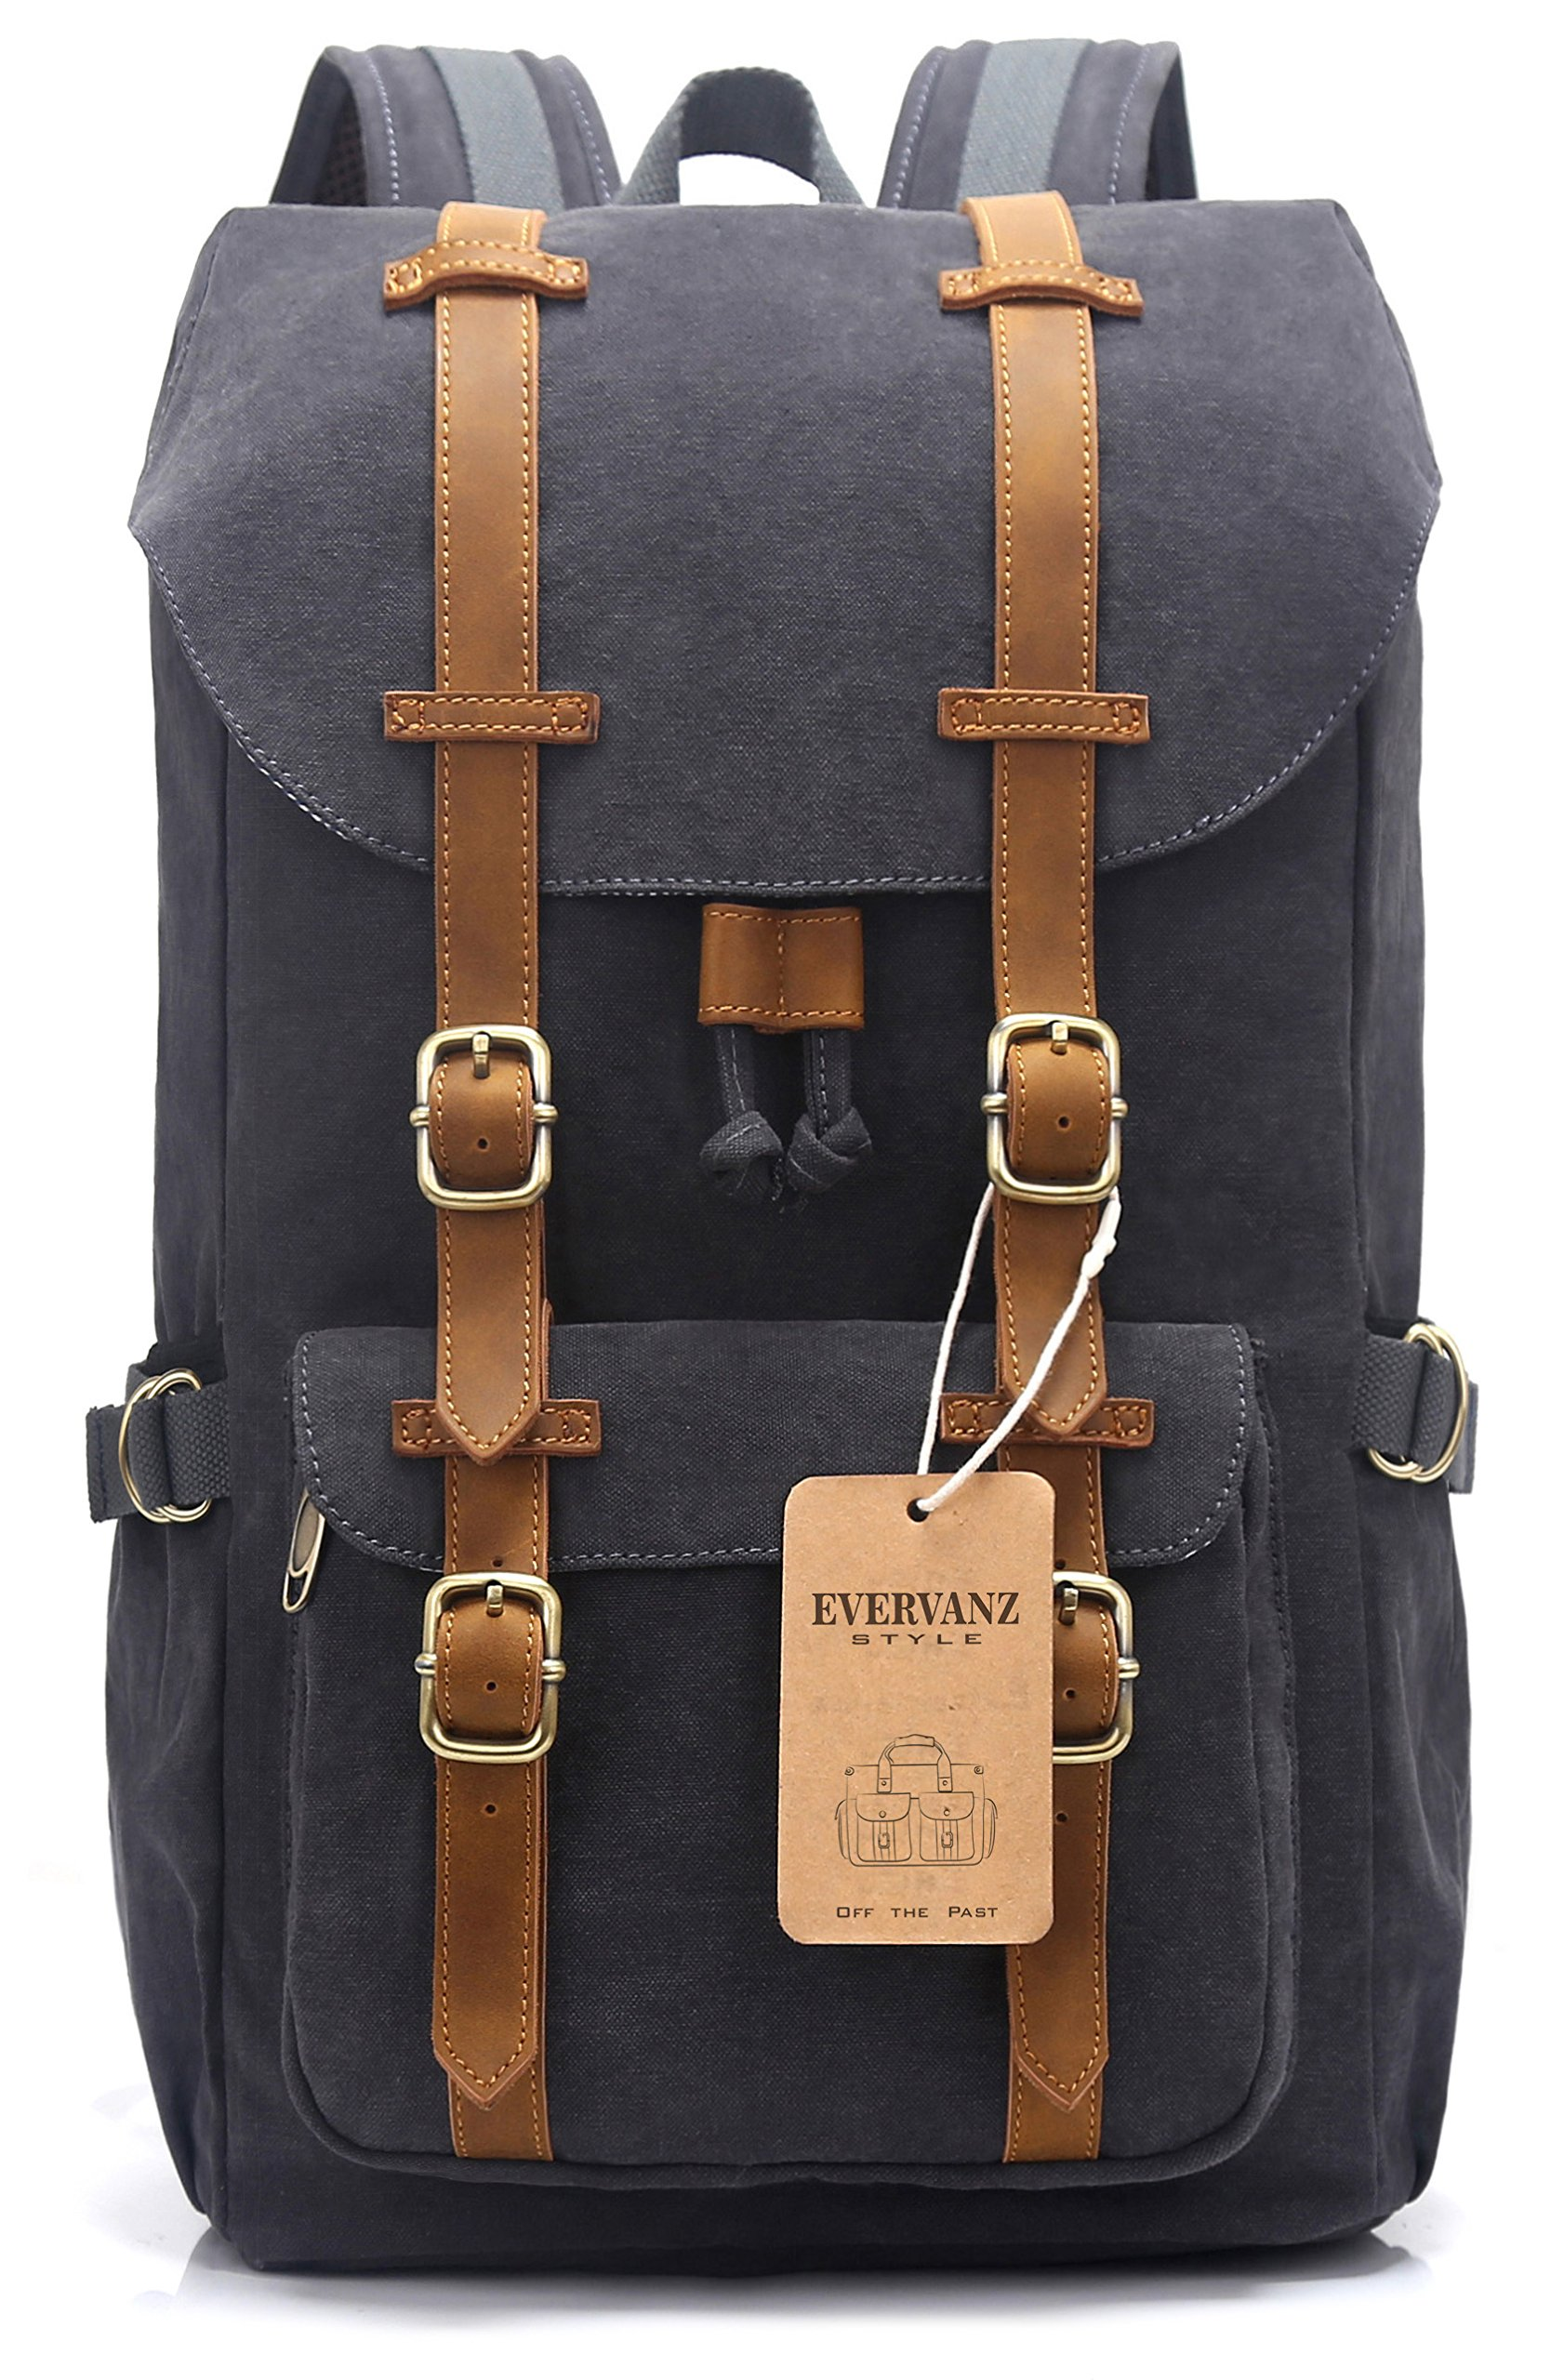 EverVanz Outdoor Canvas Leather Backpack, Travel Hiking Camping Rucksack Pack, Large Casual Daypack, College School Backpack, Shoulder Bags Fits 15'' Laptop Tablets by EverVanz (Image #1)